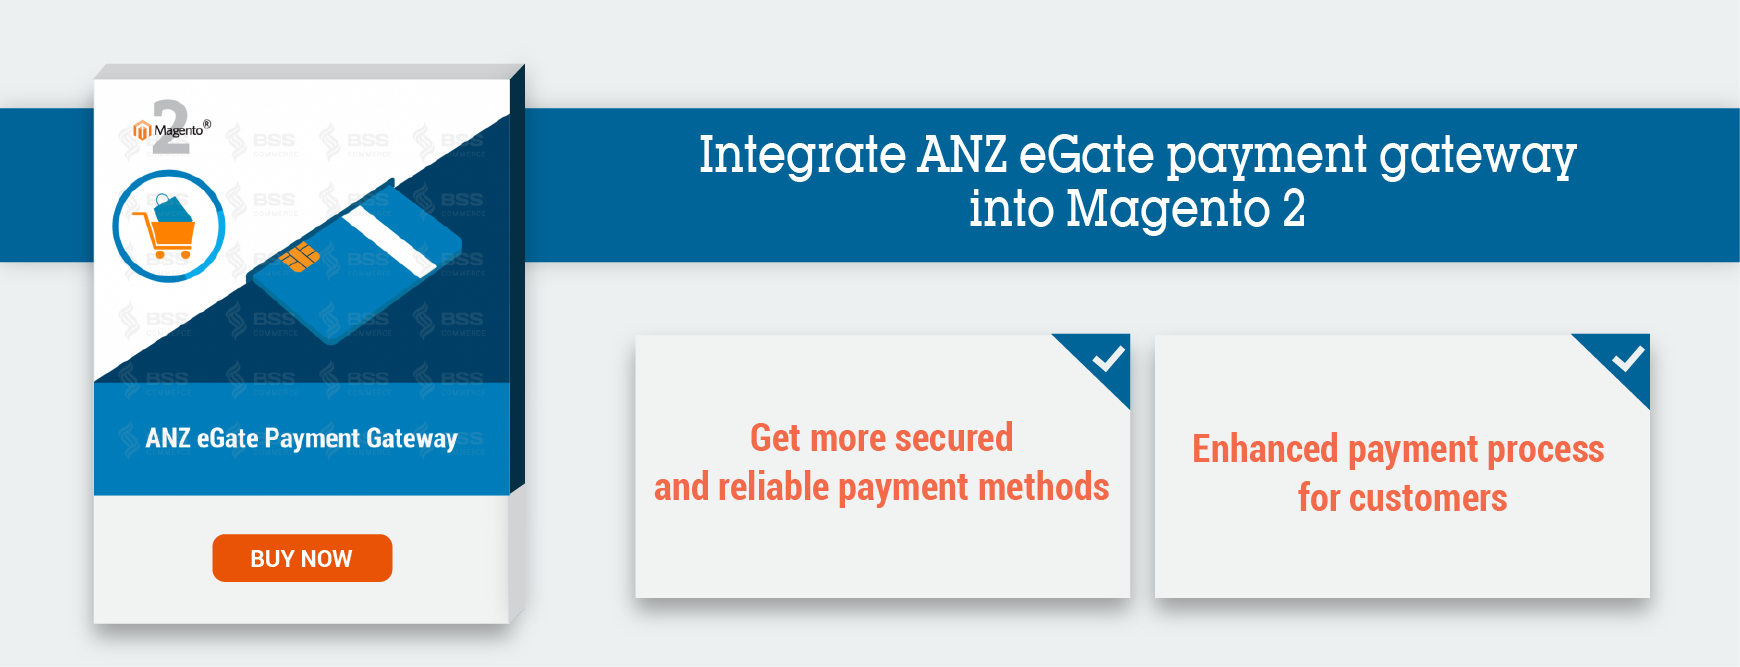 Magento ANZ eGate Payment Gateway for Magento 2